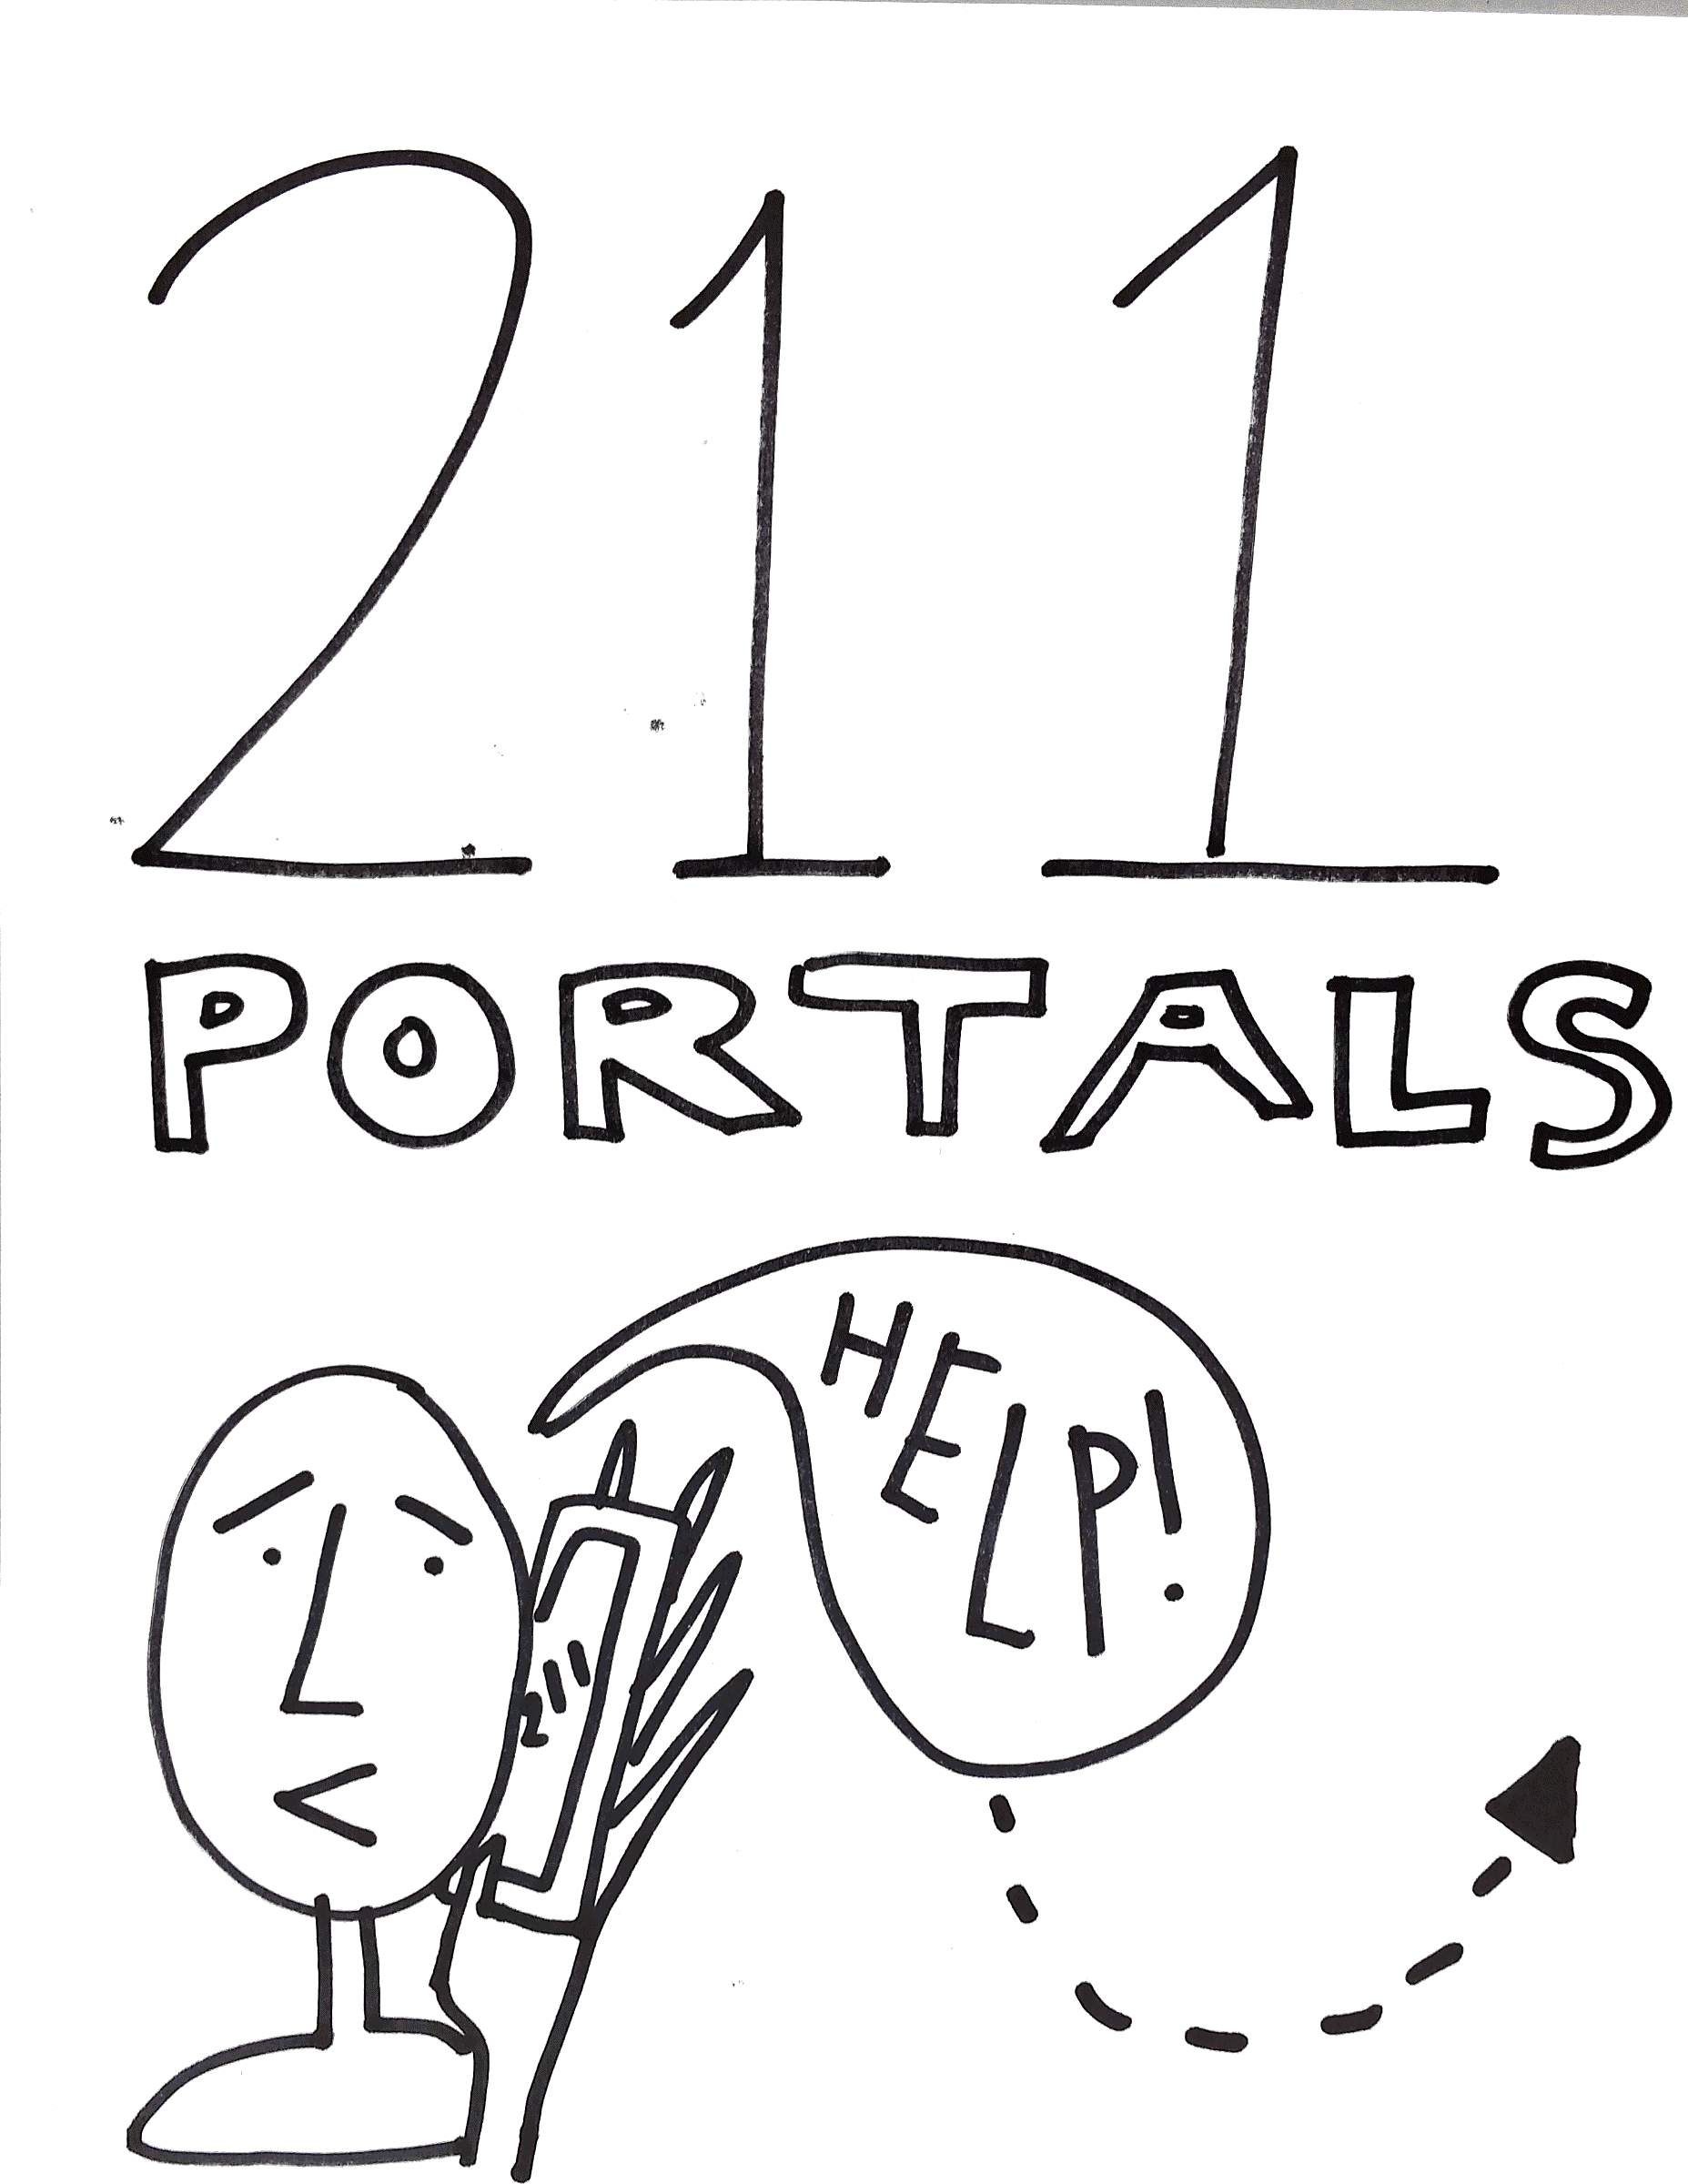 Legal Innovation ideas - 211 portals for legal help